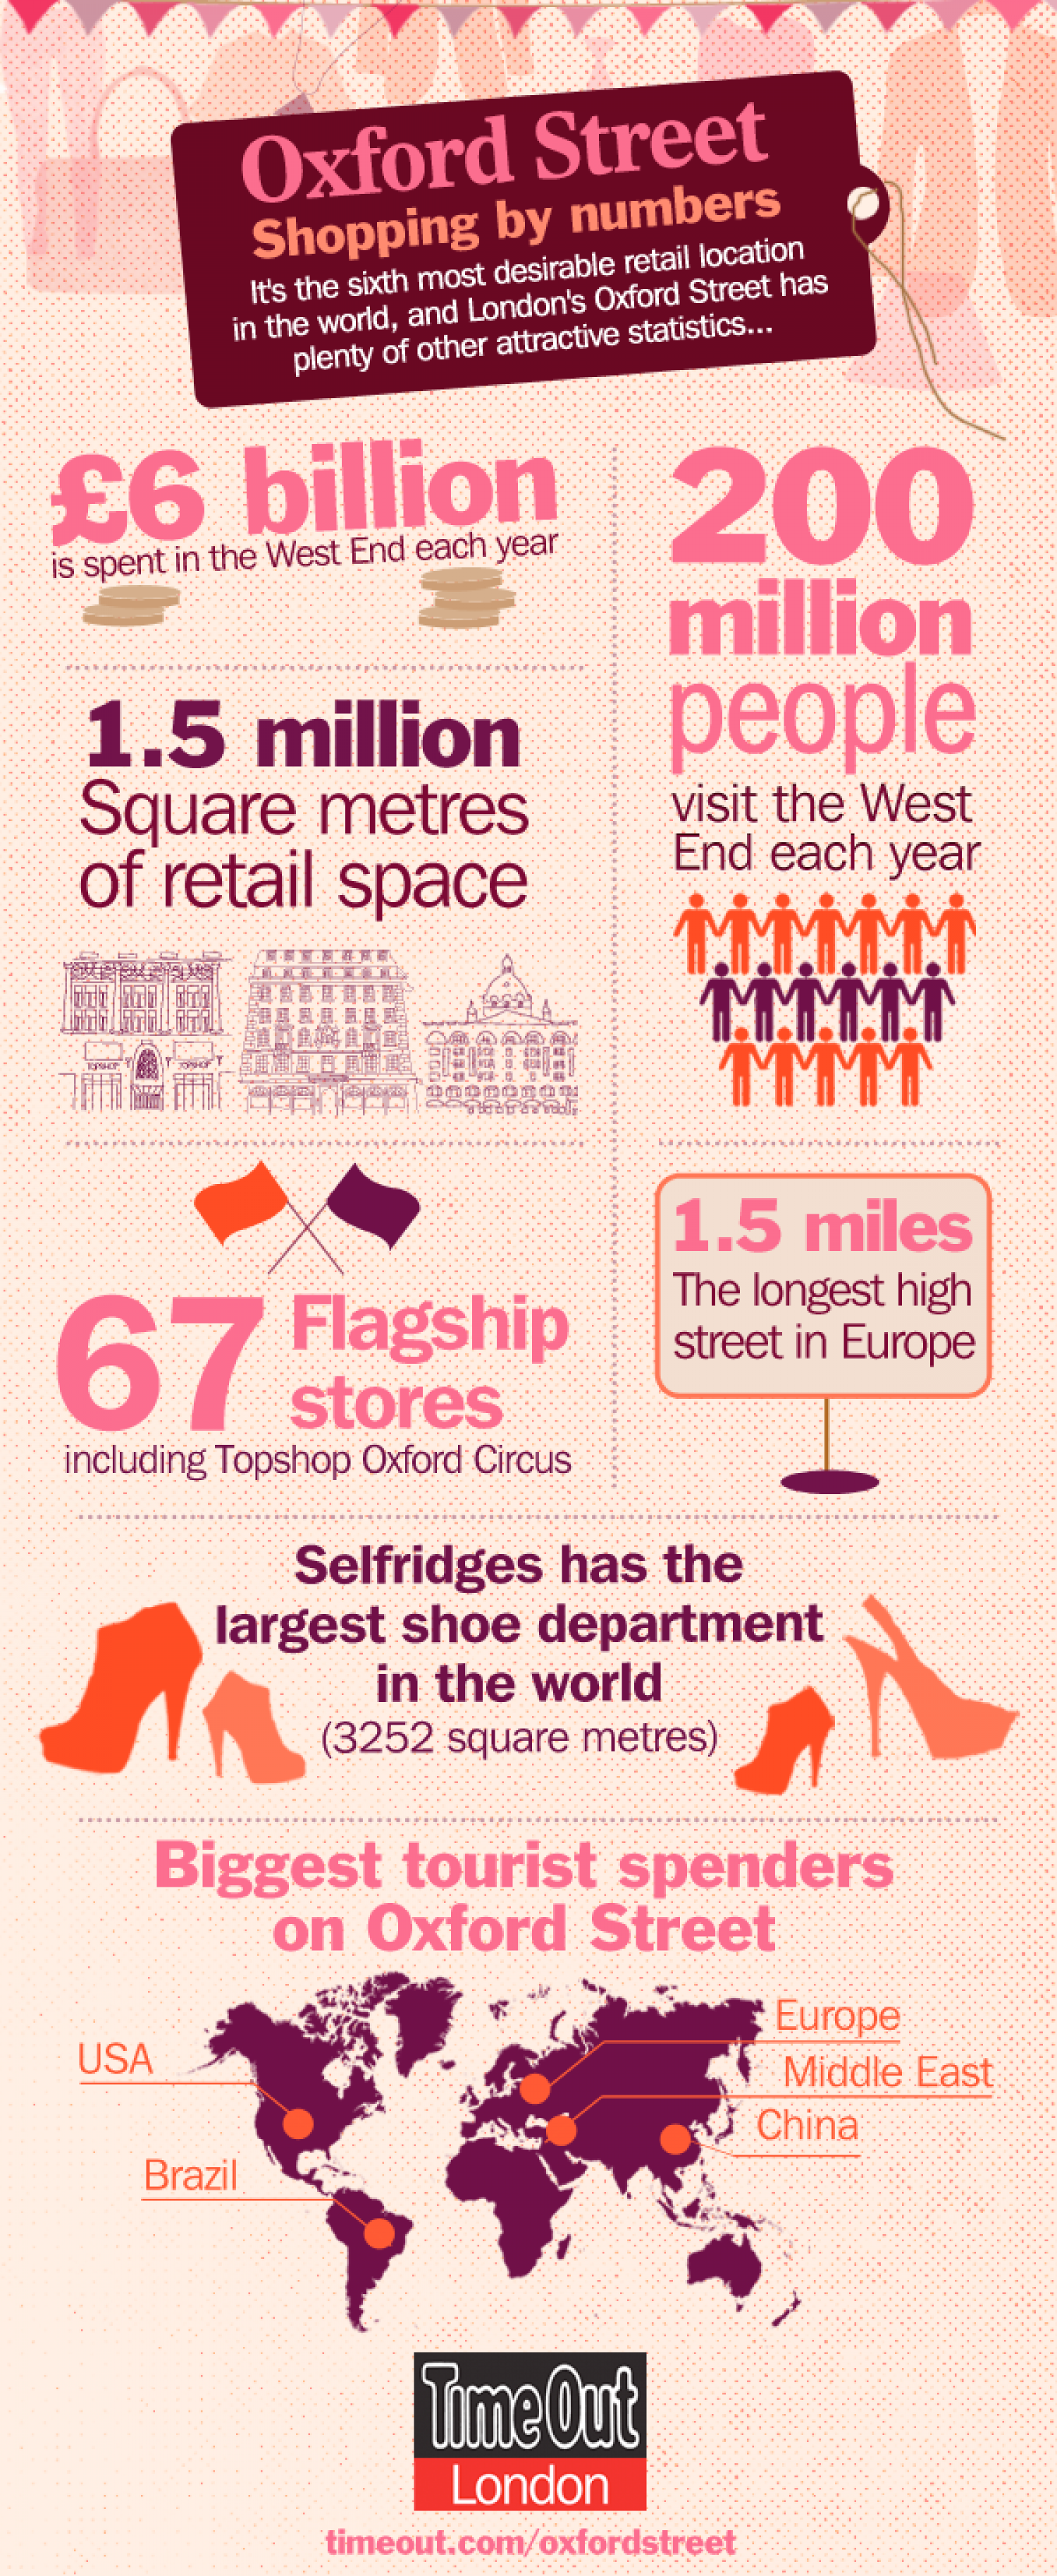 Oxford Street - Shopping by numbers Infographic